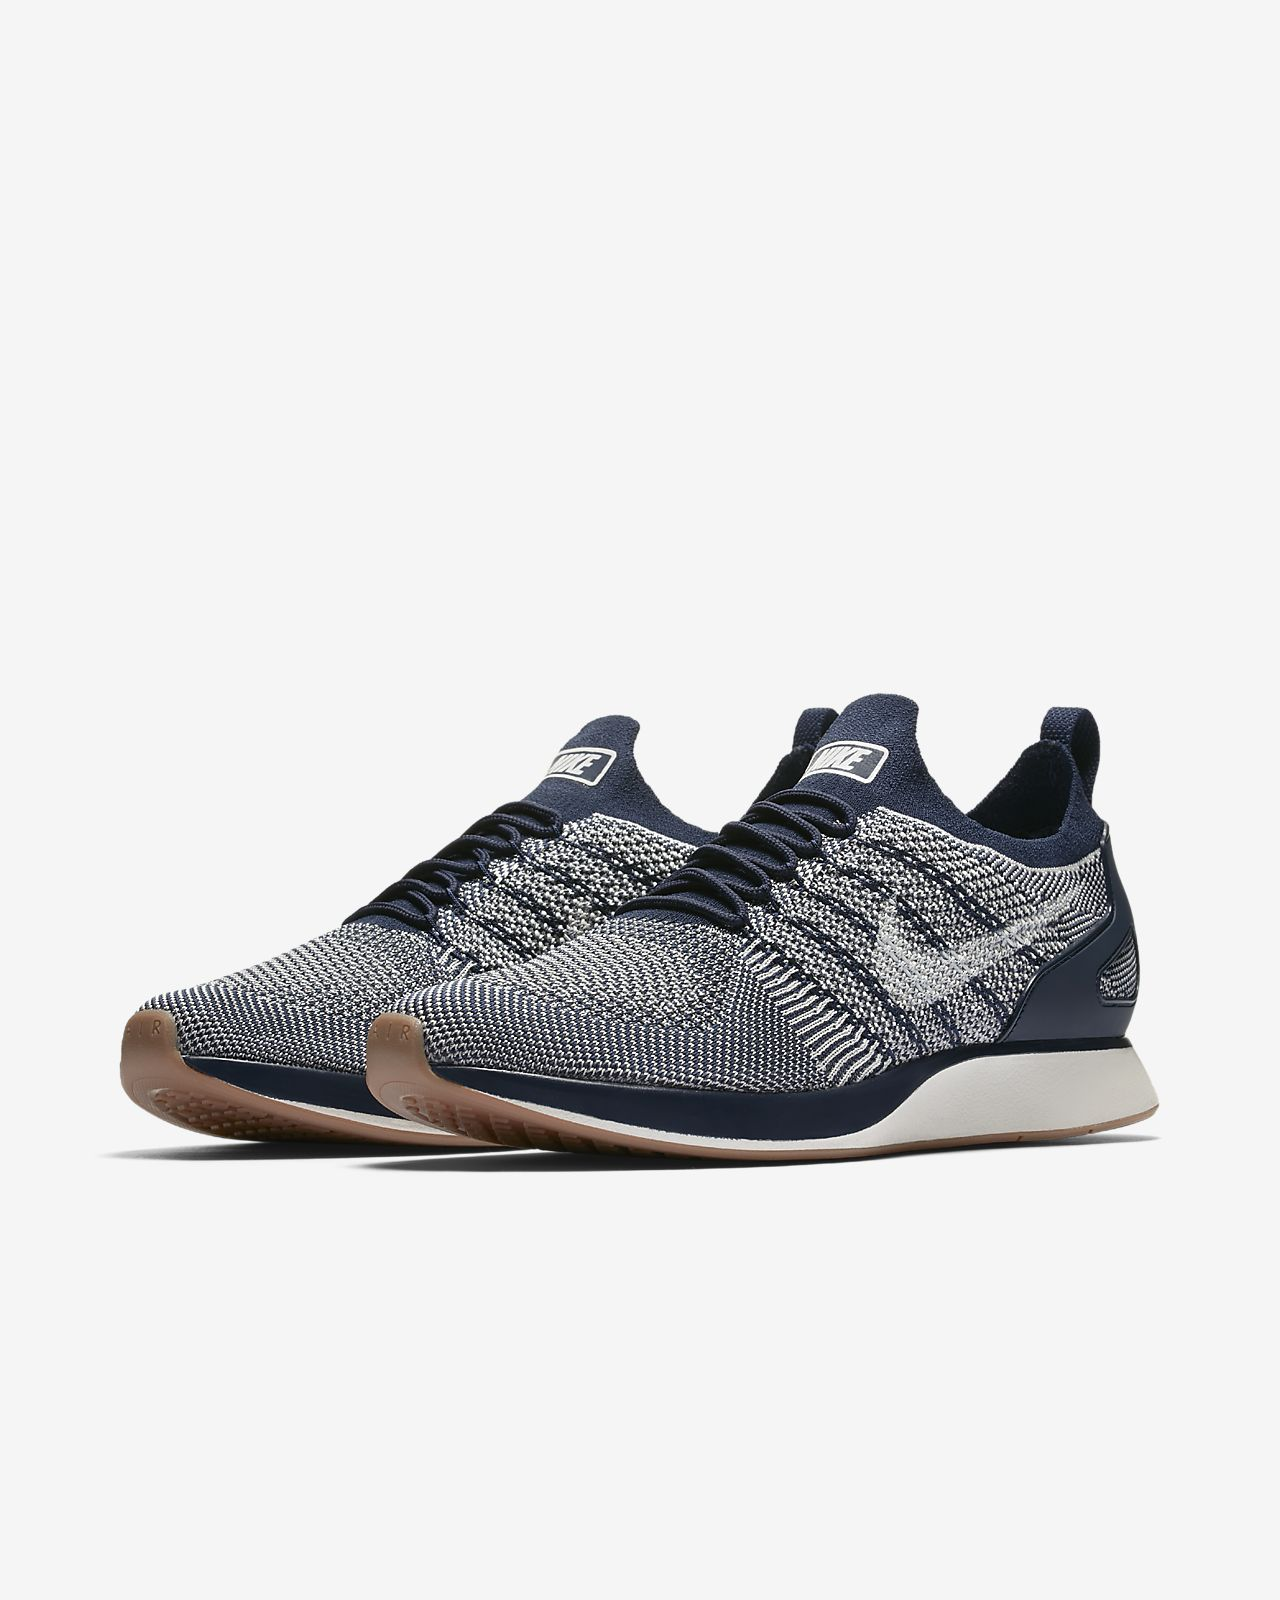 nikelab air max 1 flyknit racer blue black & purple nz